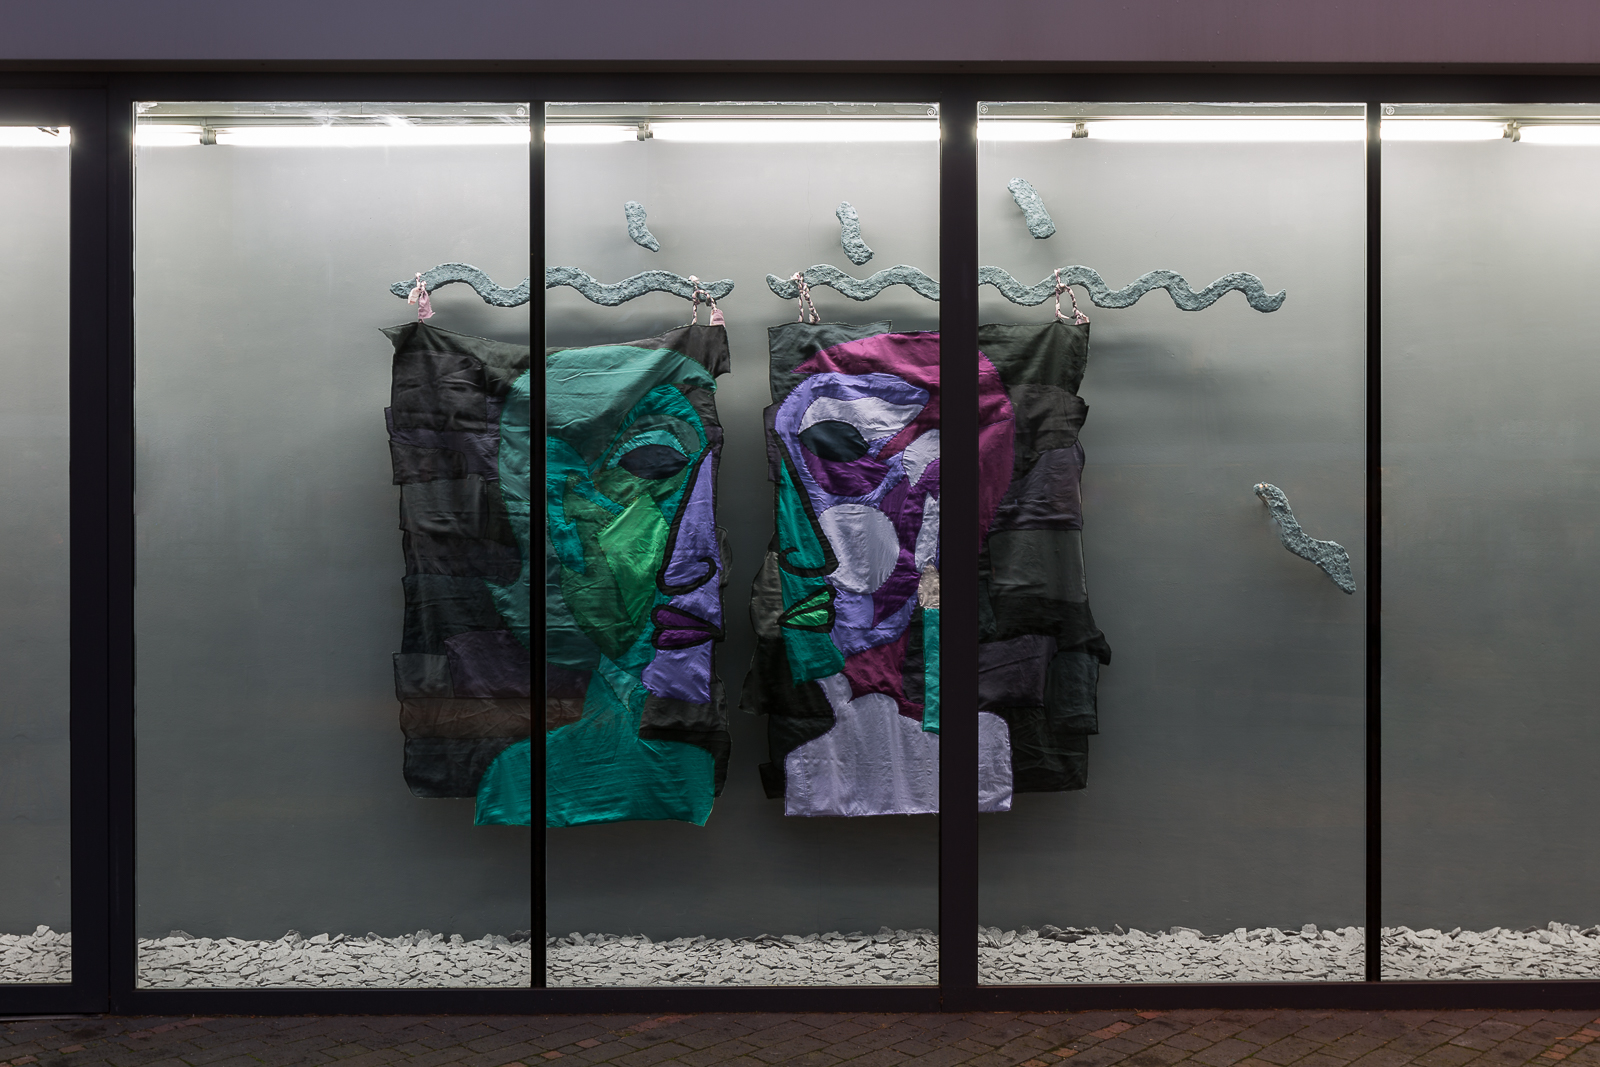 Alfie Strong, Lamia my Reflection, 2018. Silk, cotton, cotton thread, papier-mâché, water from Gormire Lake. 250 x 200 x 10 cm. Photographer: Ollie Harrop.